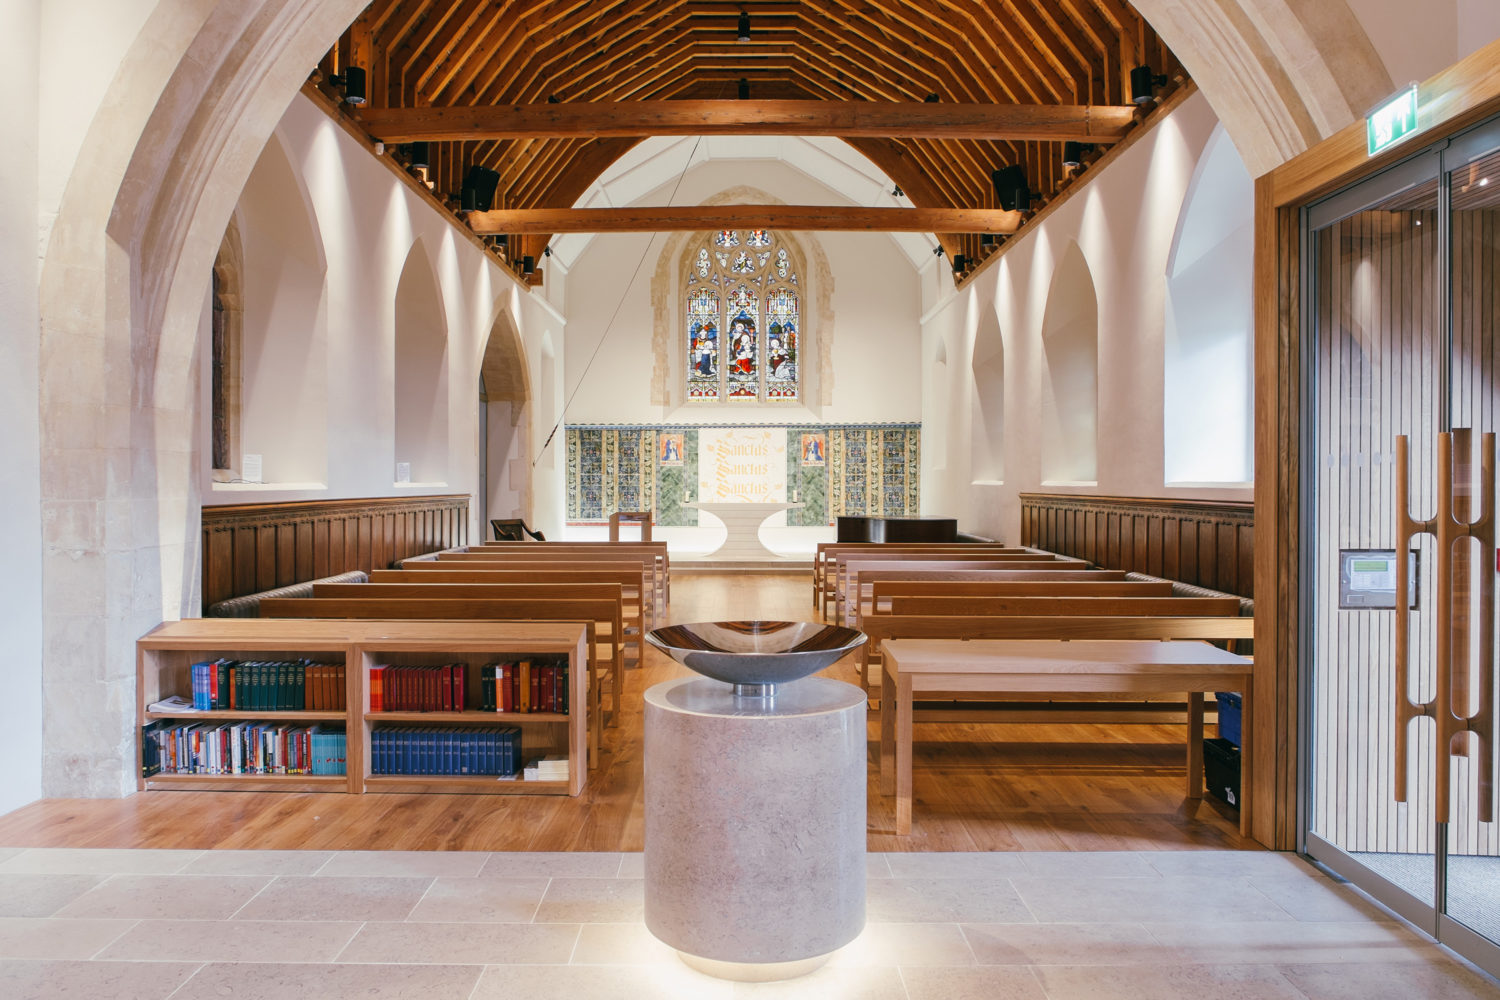 Design Engine UoW Chapel Interior Font and altar